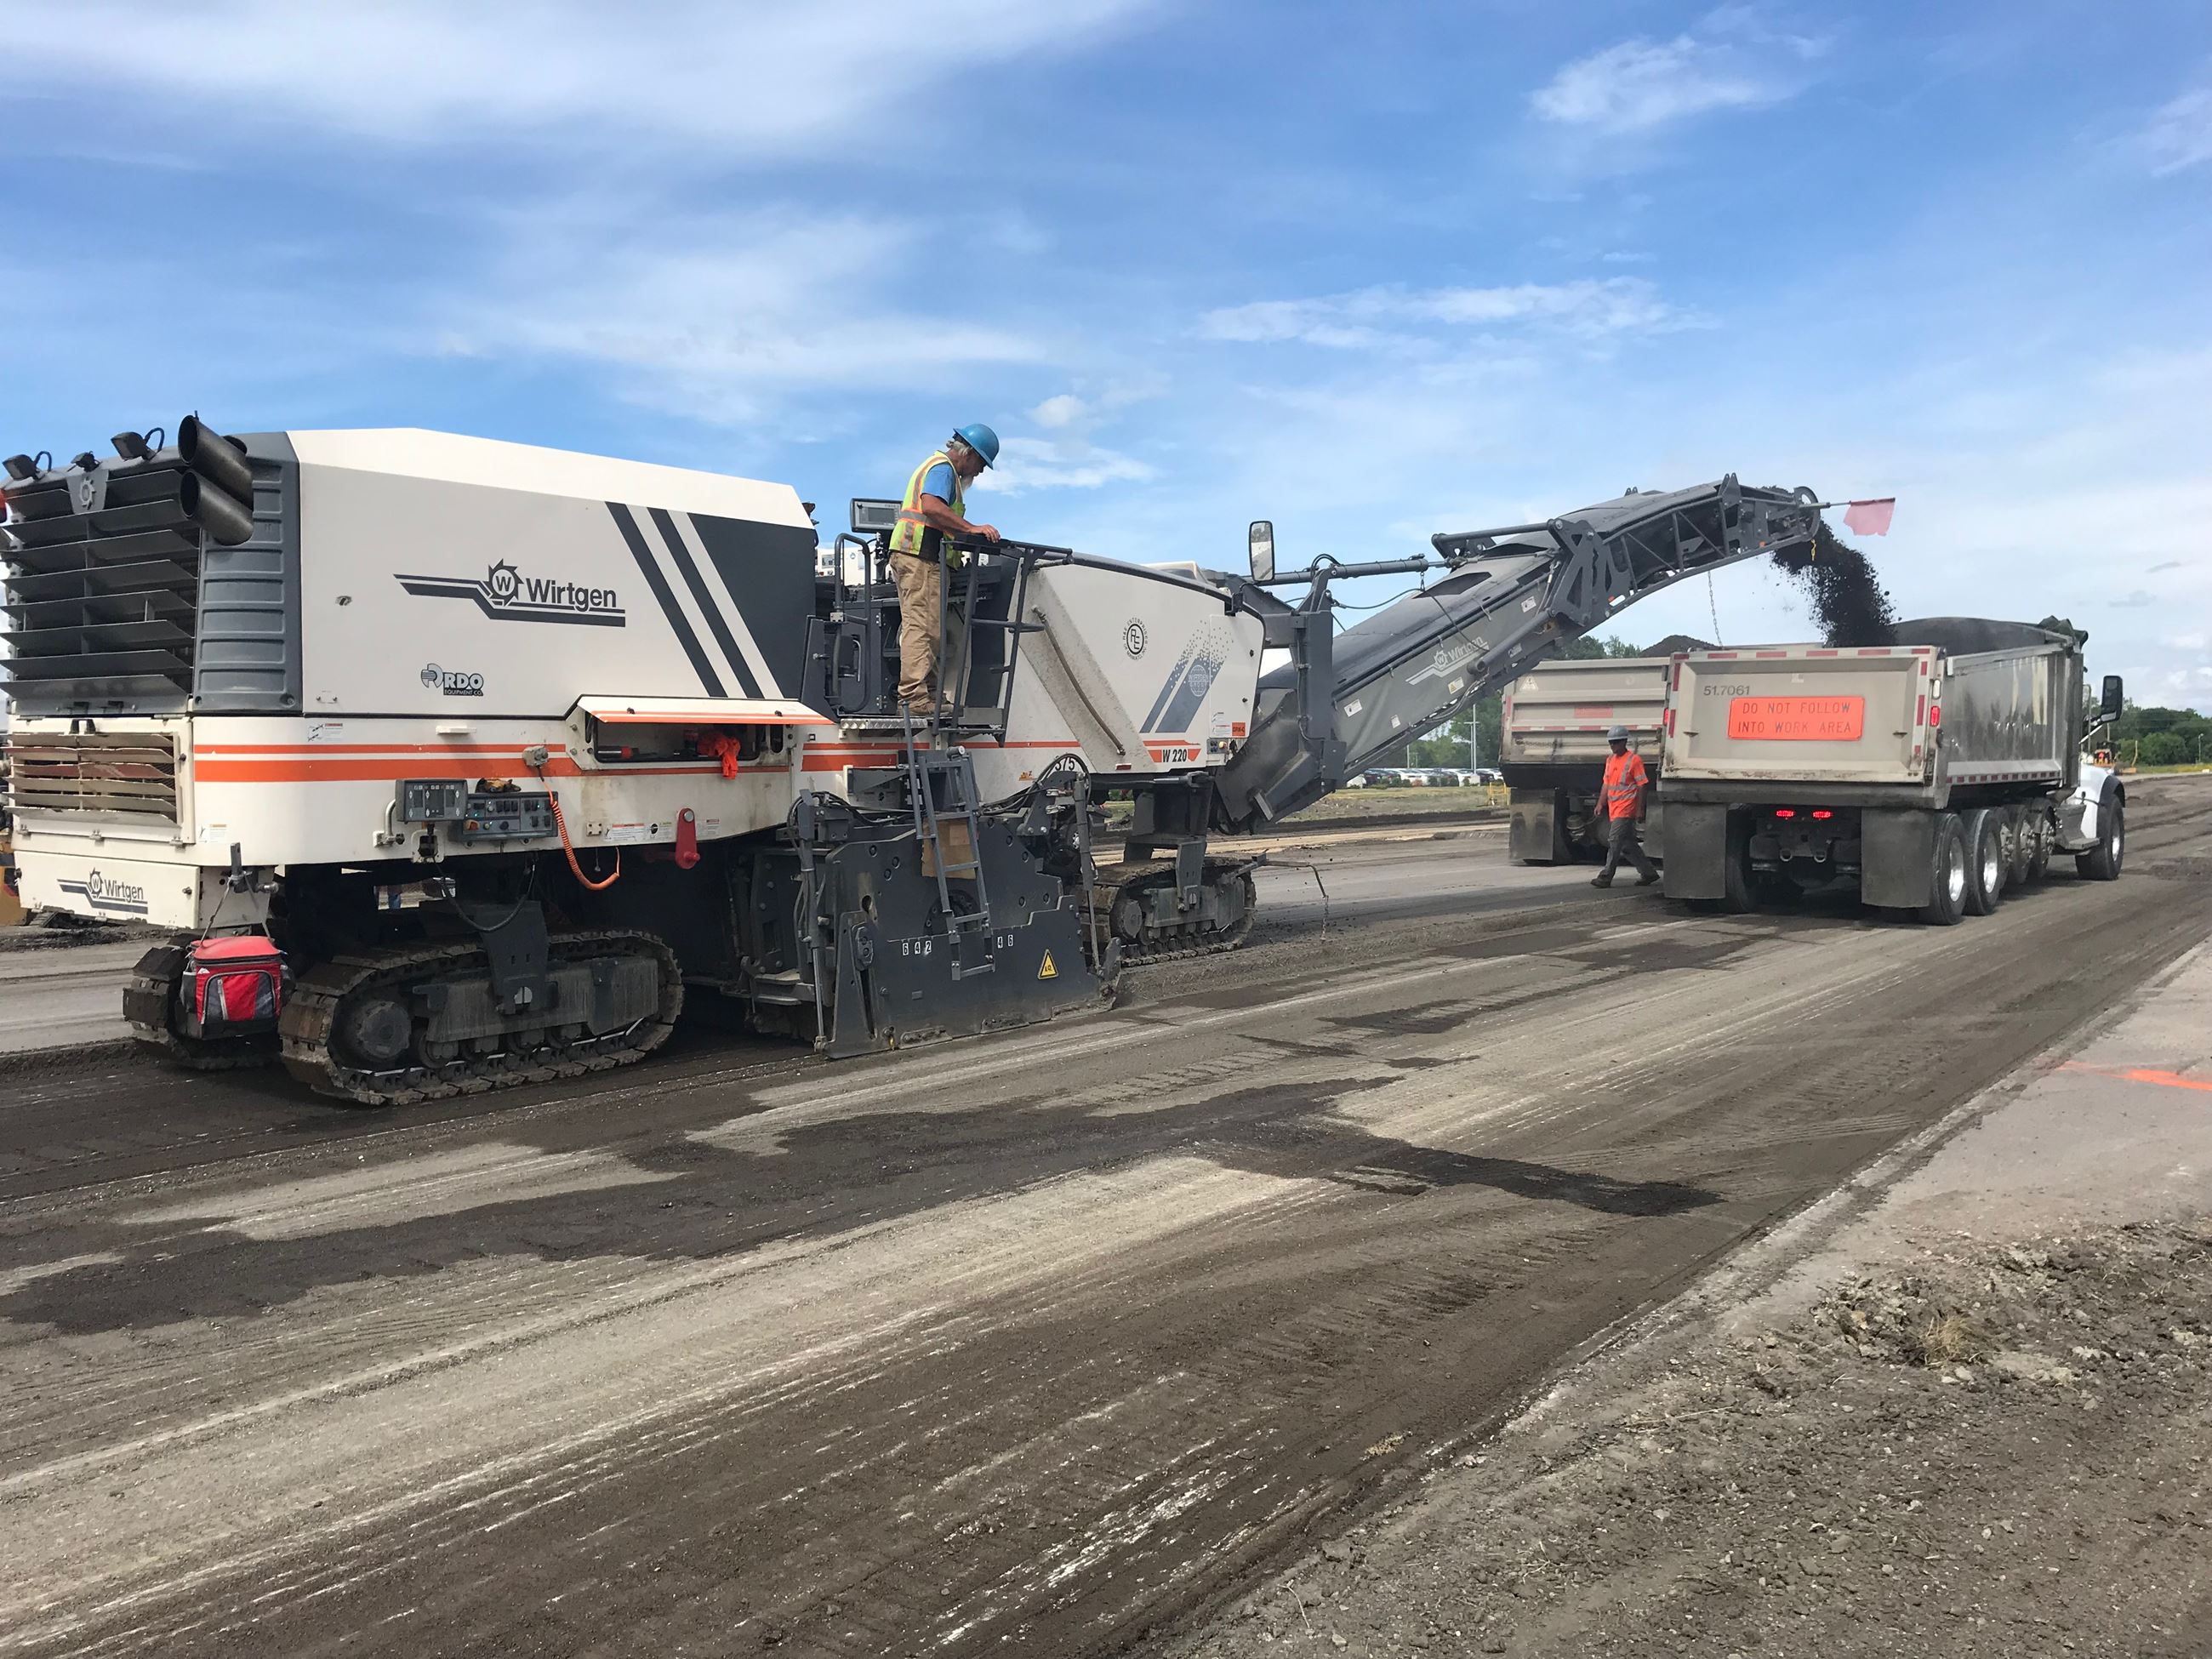 Construction workers removing asphalt during road construction